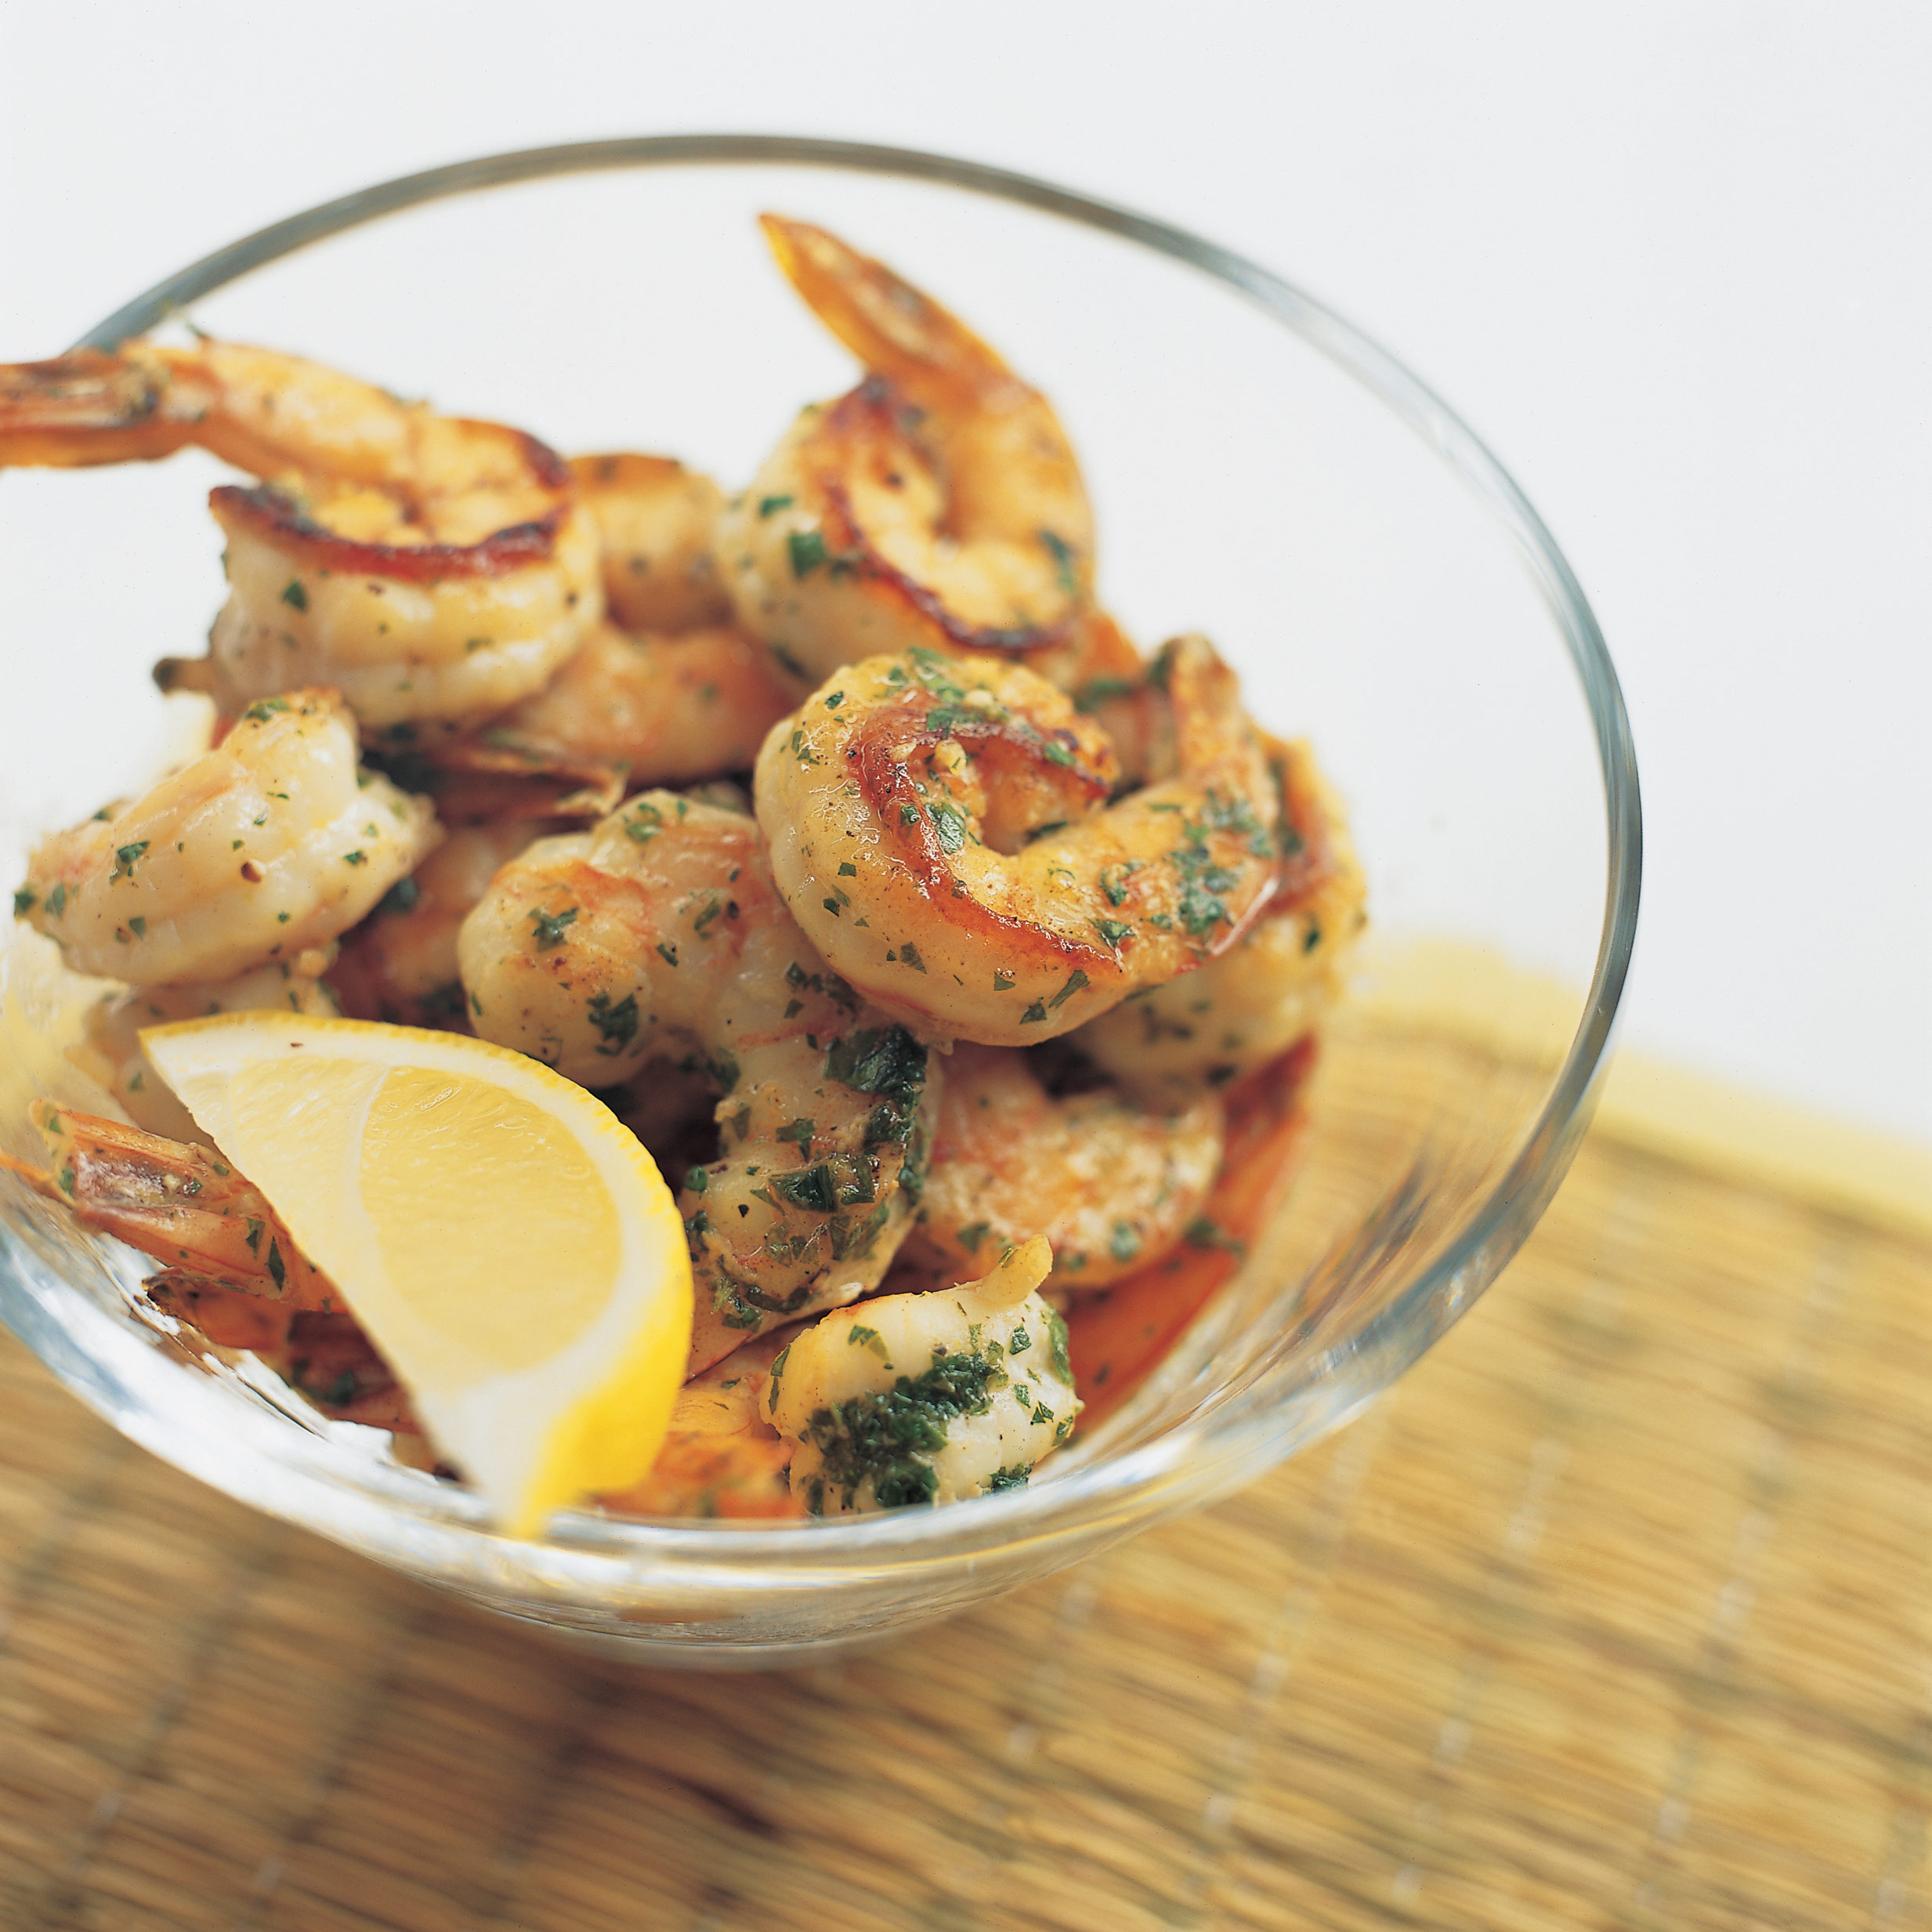 Pan-Seared Shrimp with Garlic-Lemon Butter Recipe - Cook's Illustrated